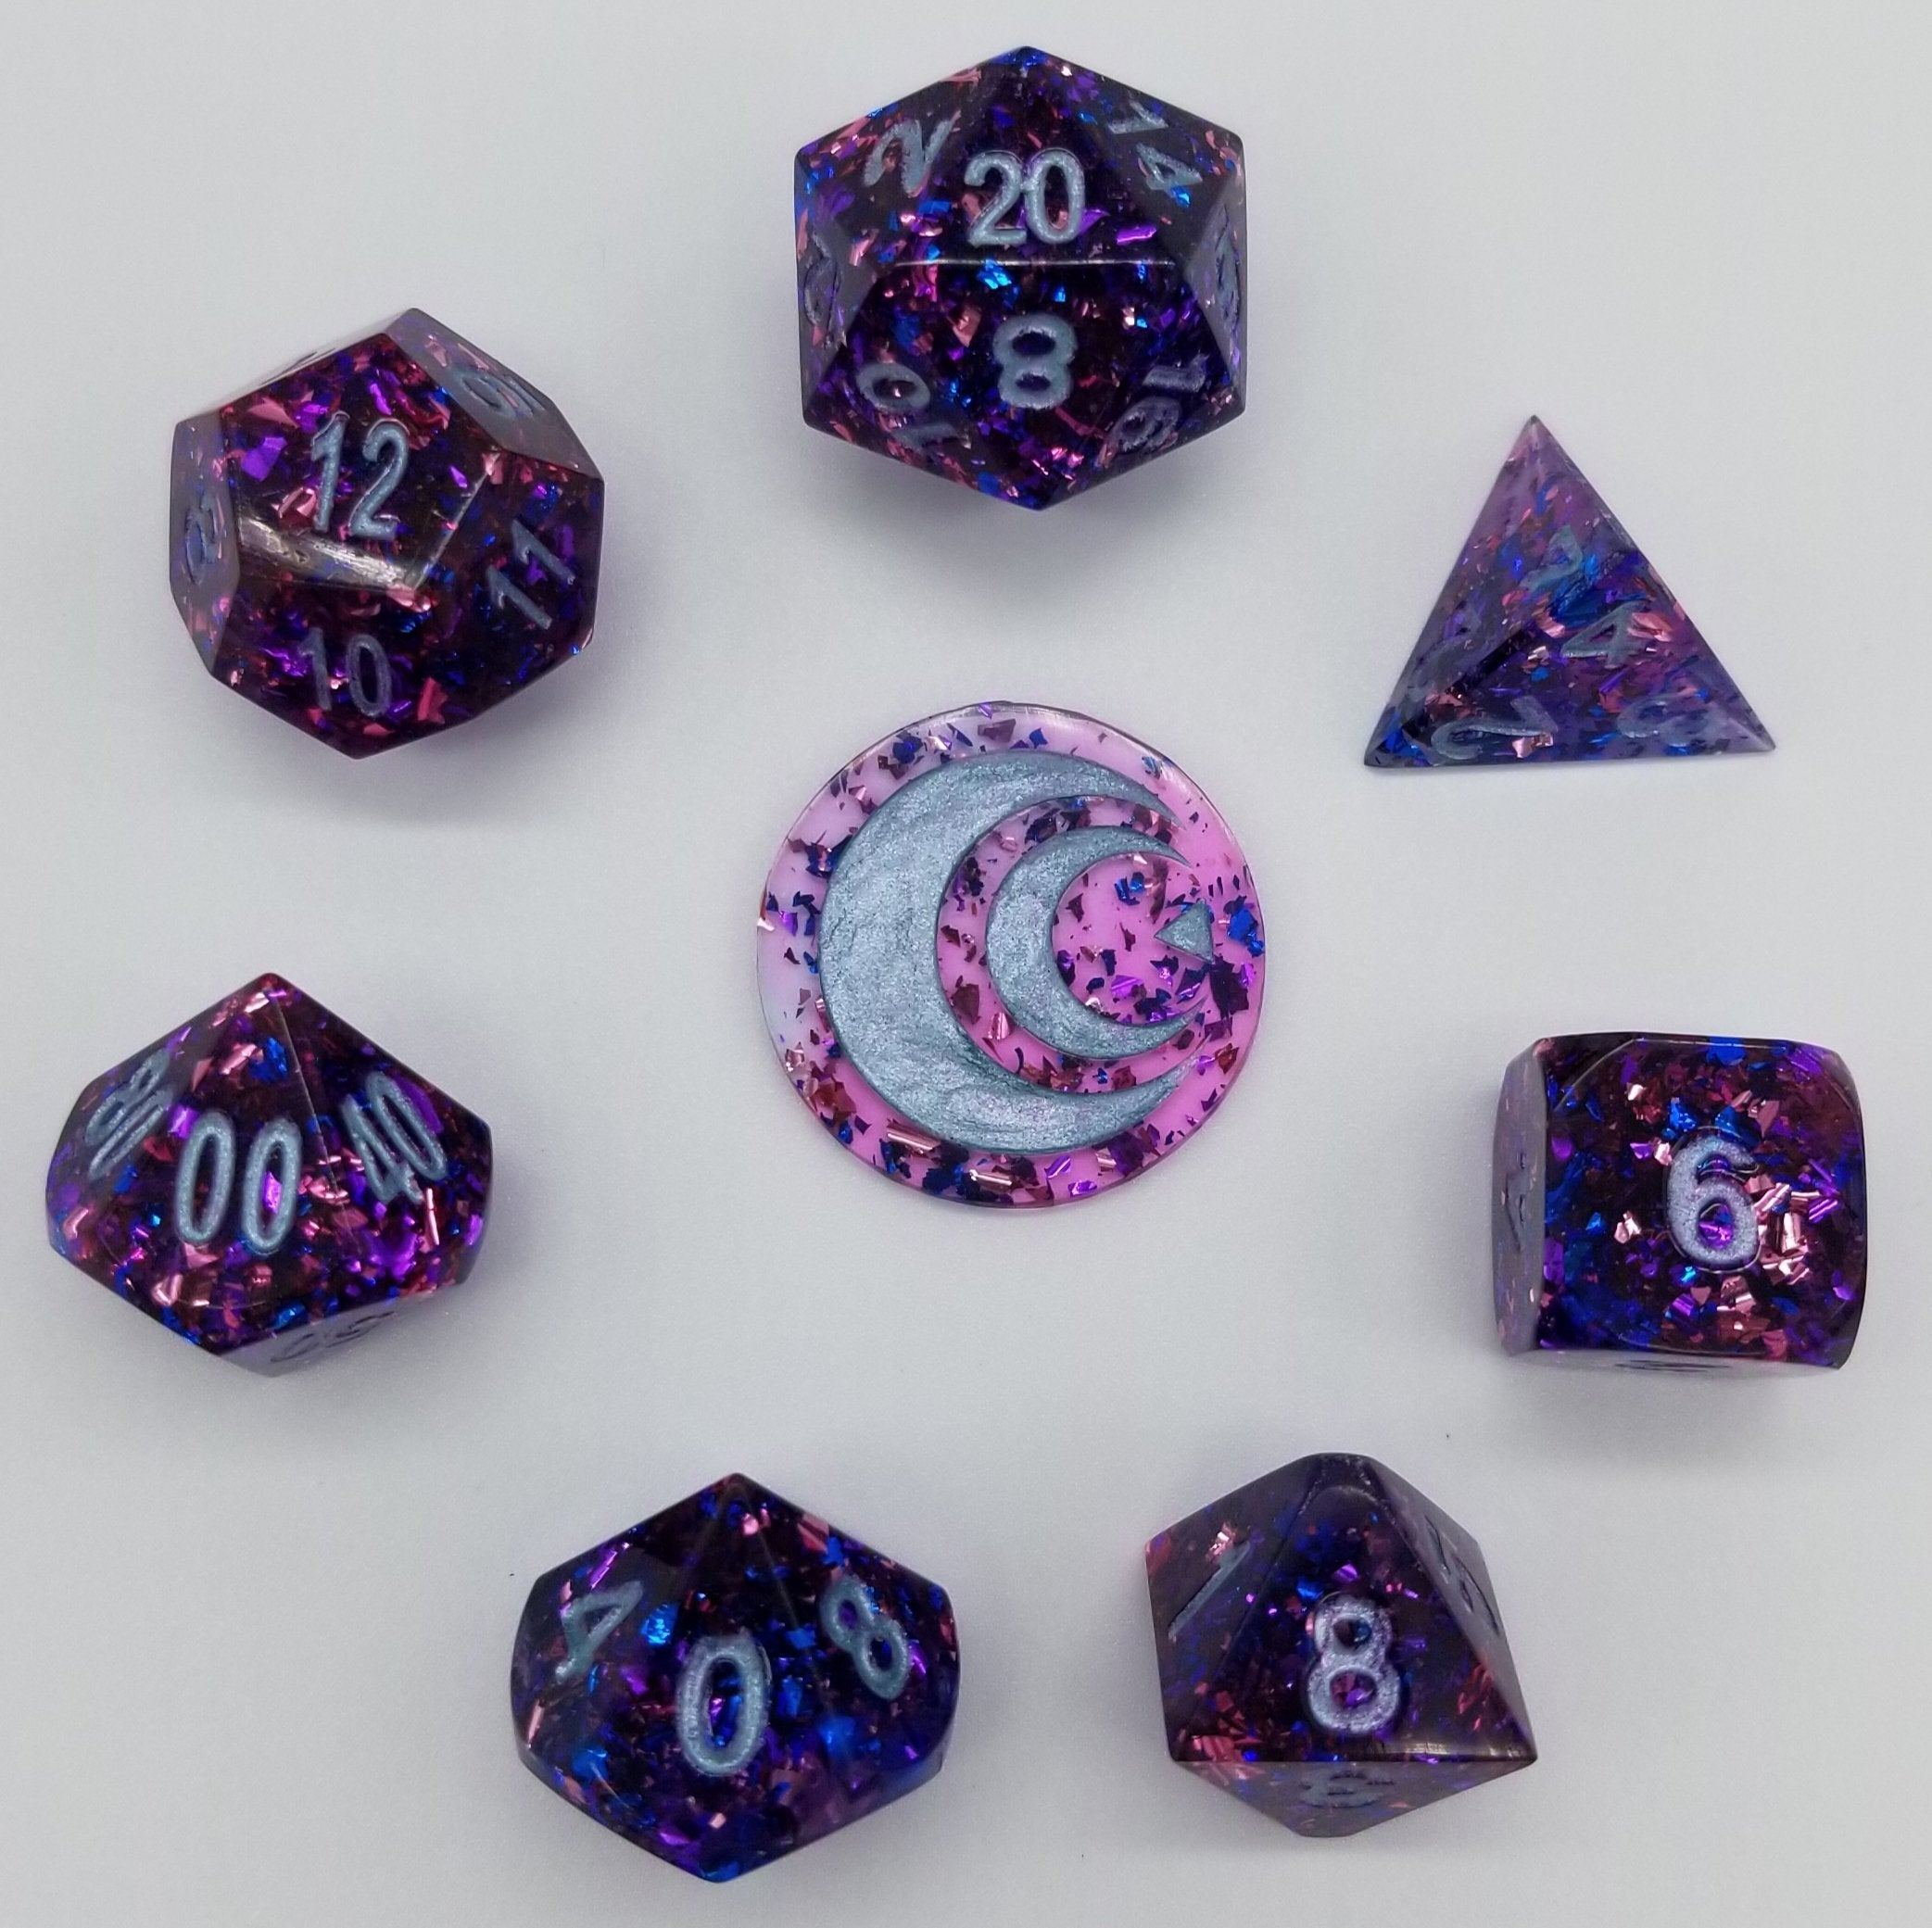 Transparent purple handmade resin dice with multicolored metallic foil inside and light blue ink.